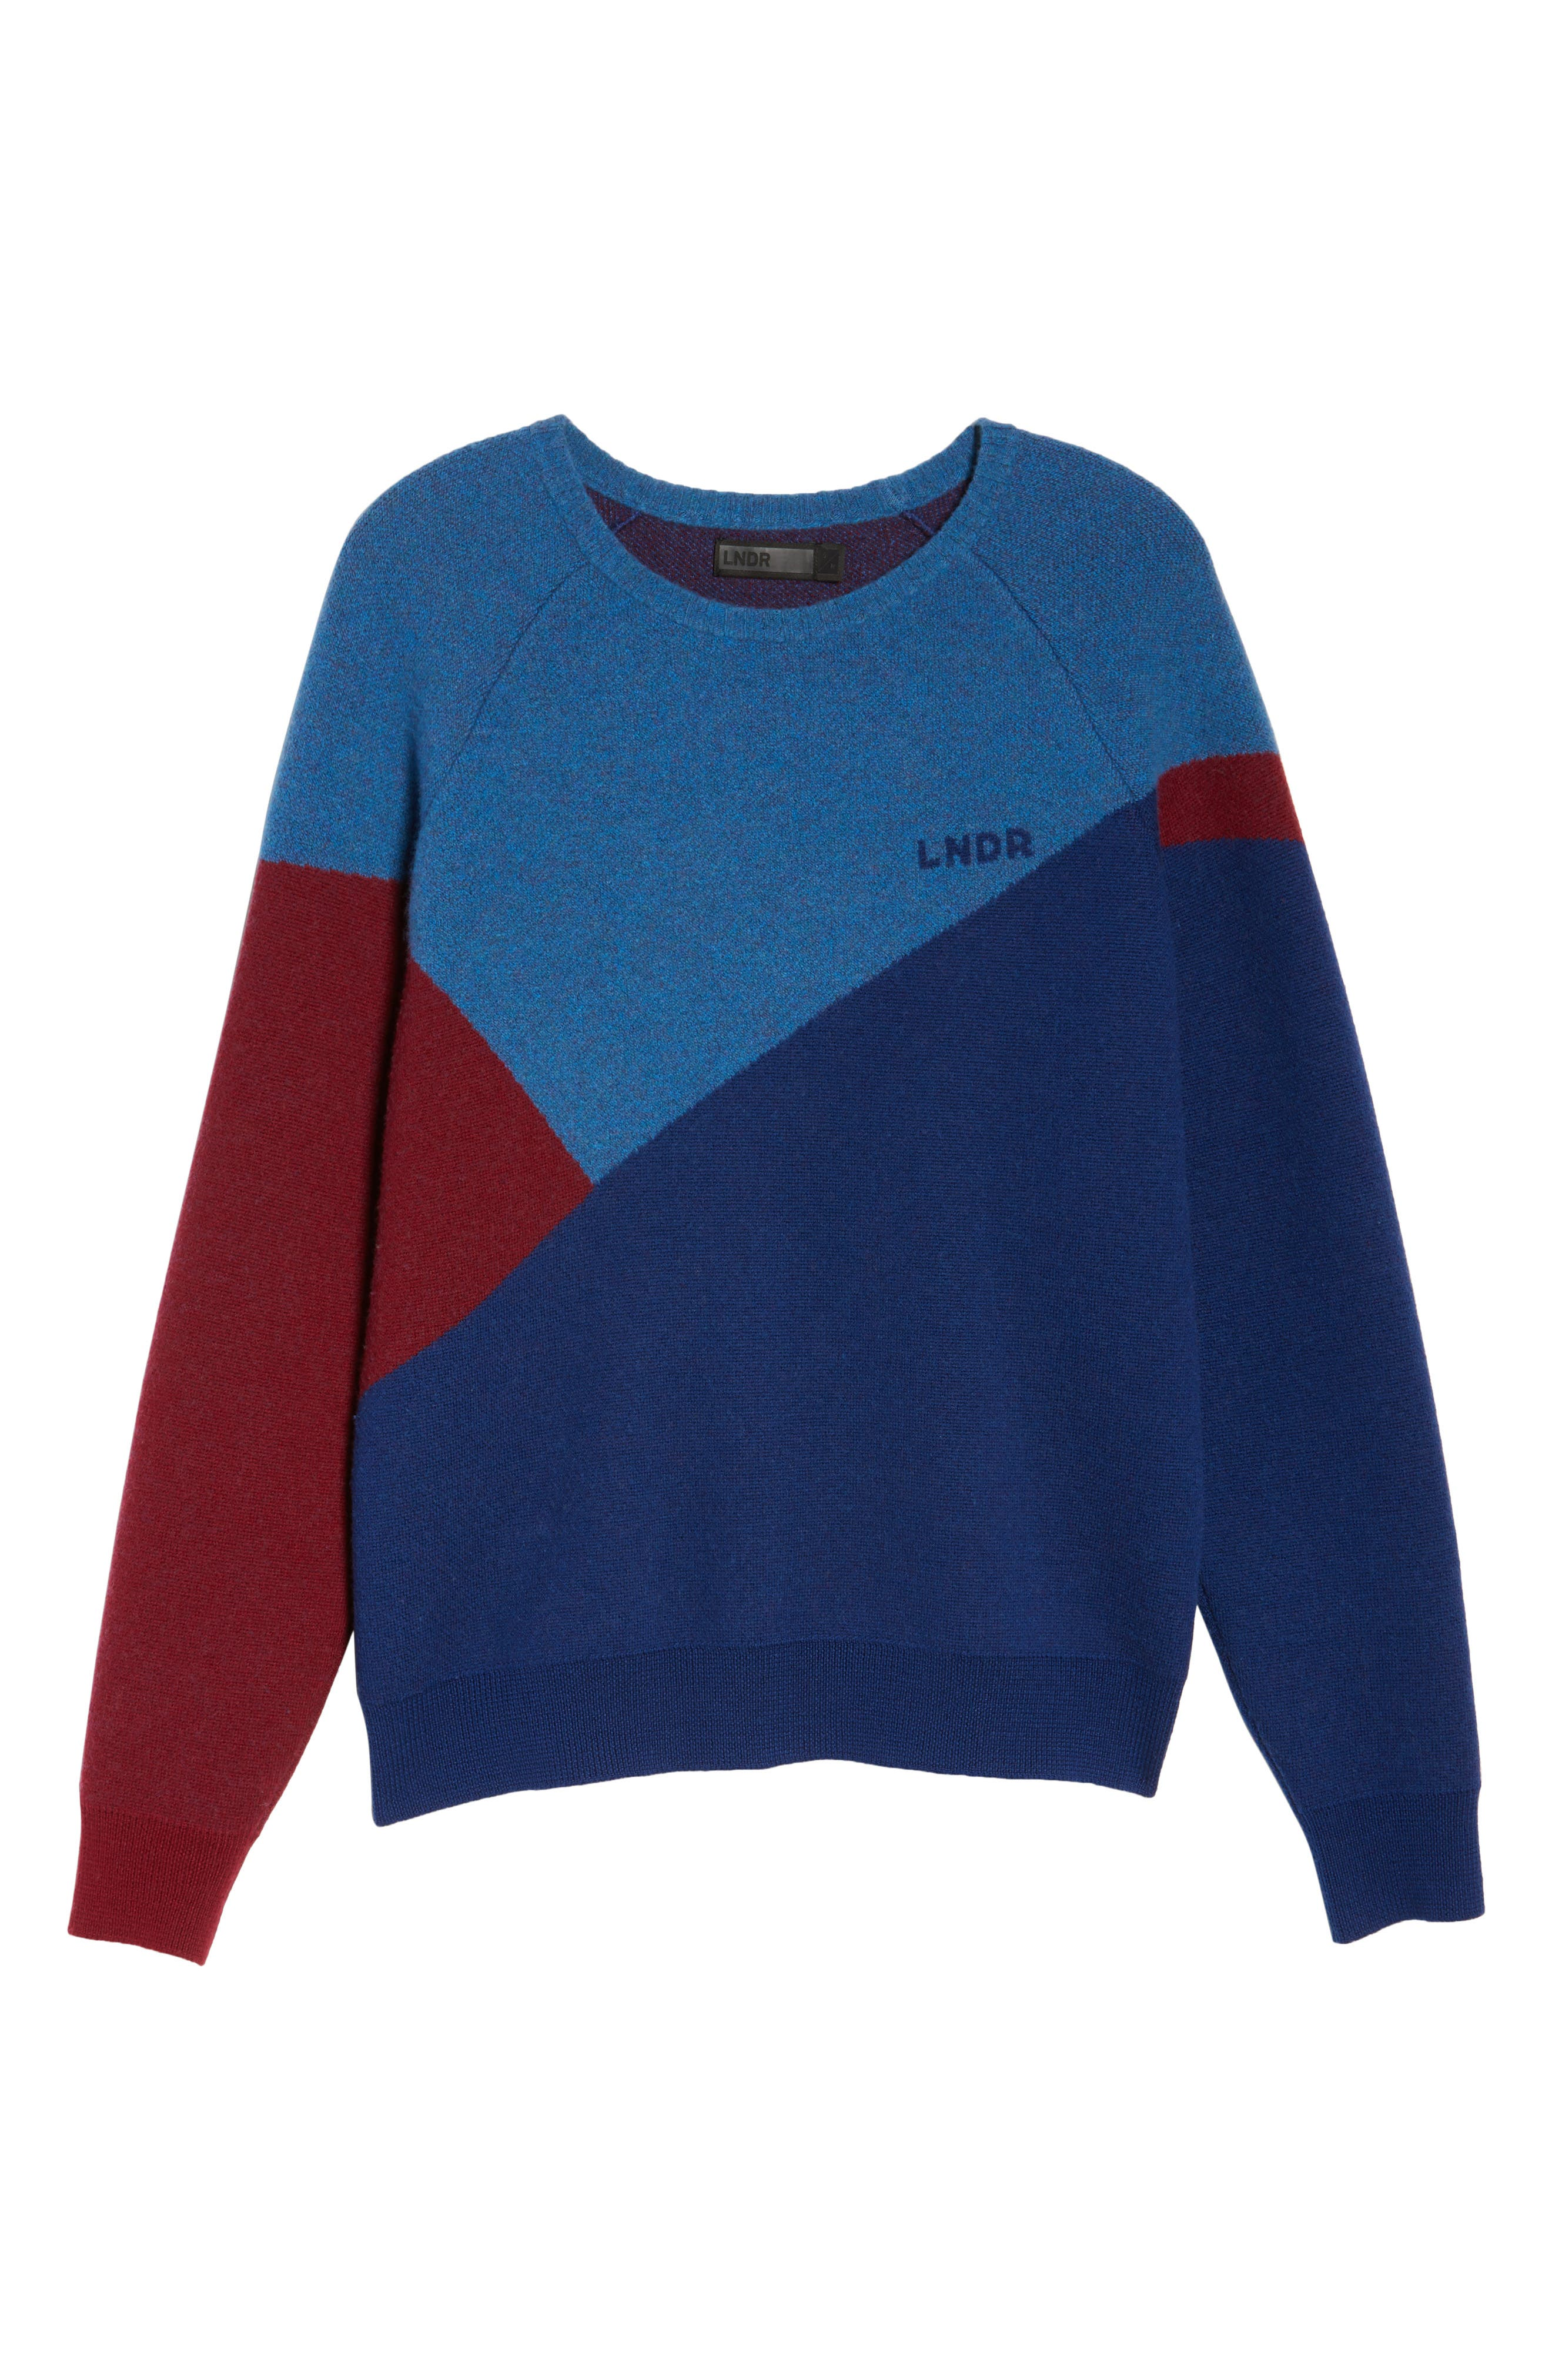 Winter Waterboy Sweater,                             Alternate thumbnail 6, color,                             Burgundy